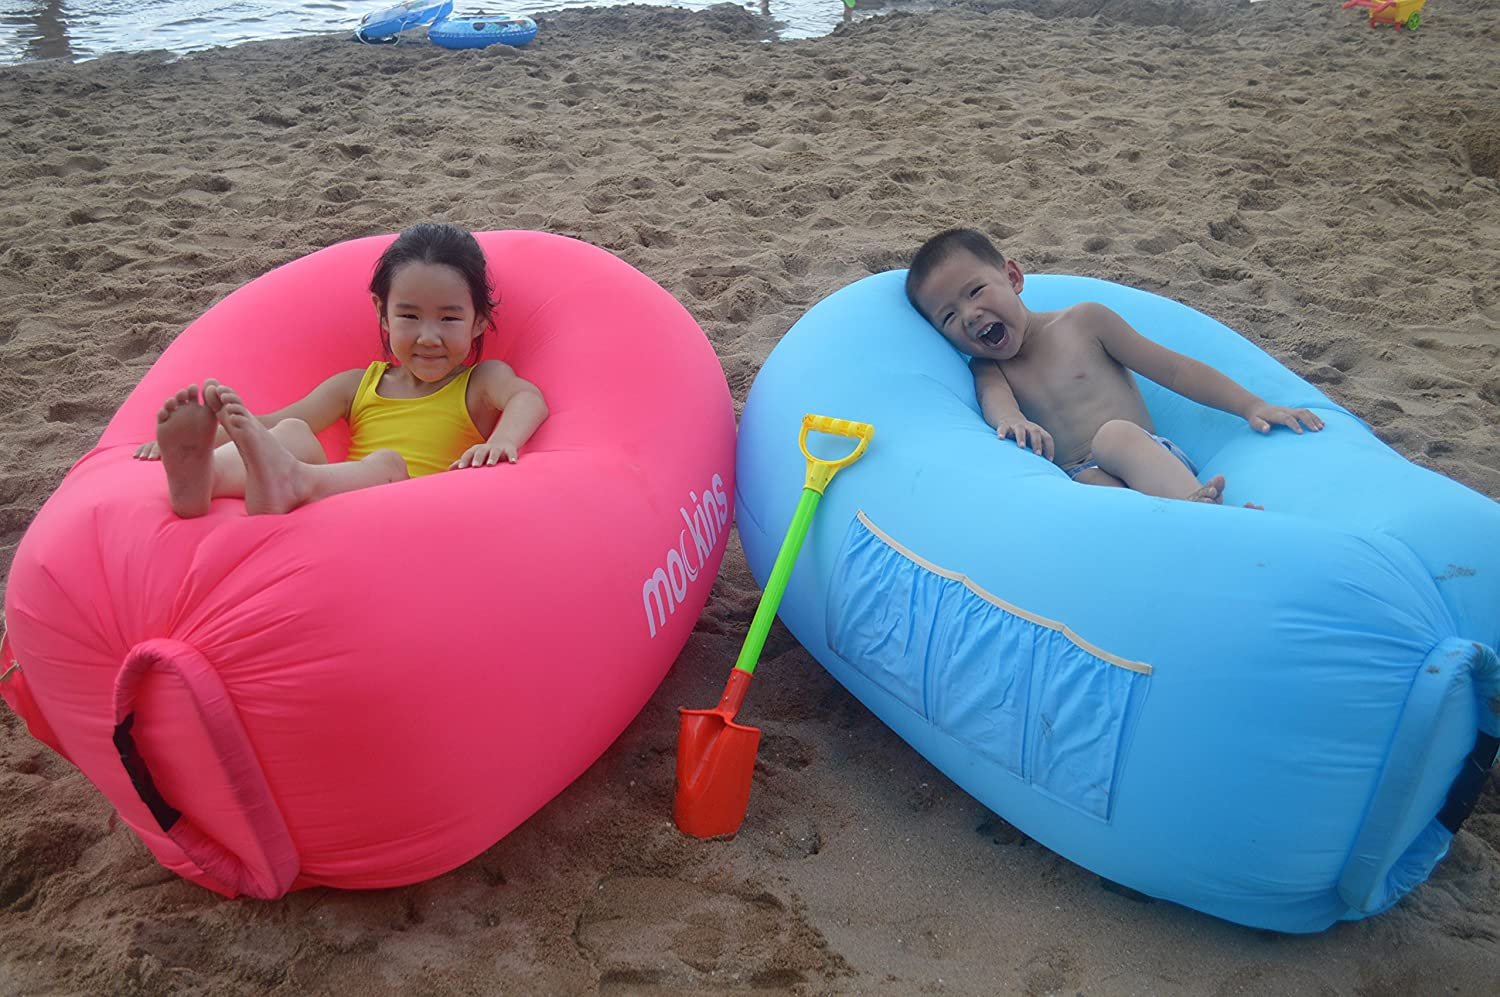 Mockins Kids Blue Inflatable Lounger Hangout Sofa Bed with Travel Bag Pouch The Portable Inflatable Couch Air Lounger is Perfect for Music Festivals and Camping Accessories Inflatable Hammock /… /… /…